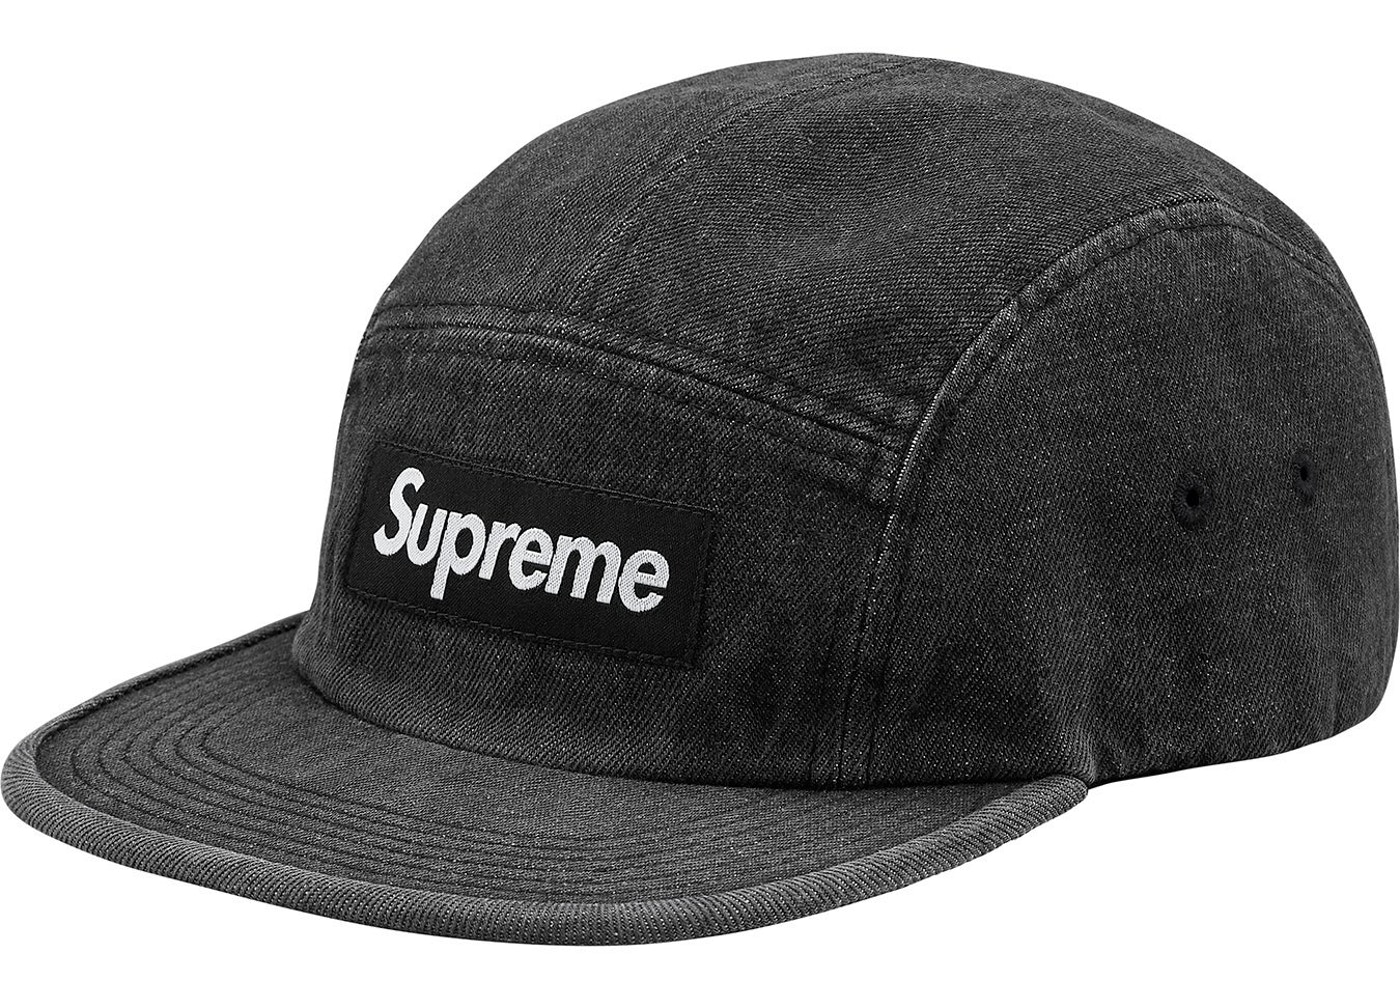 Or Ask View All Bids Supreme Denim Camp Cap Black